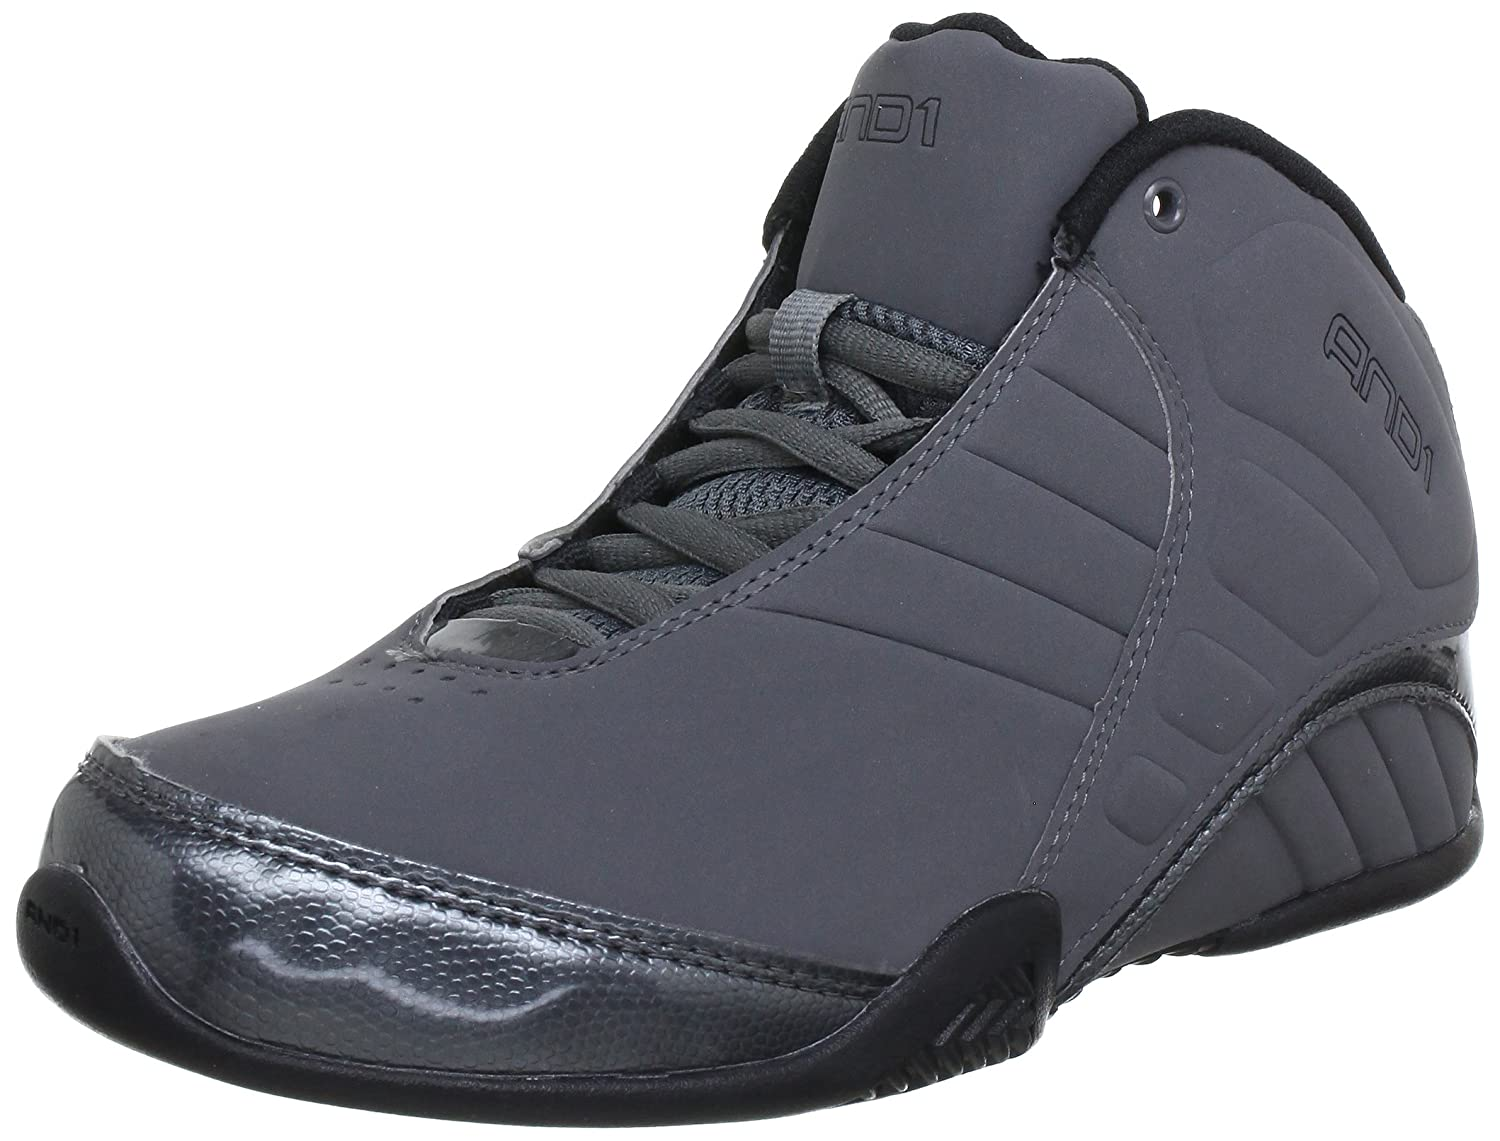 8a7a2564216d3 AND 1 Men's Rocket 3.0 Mid Basketball Shoe